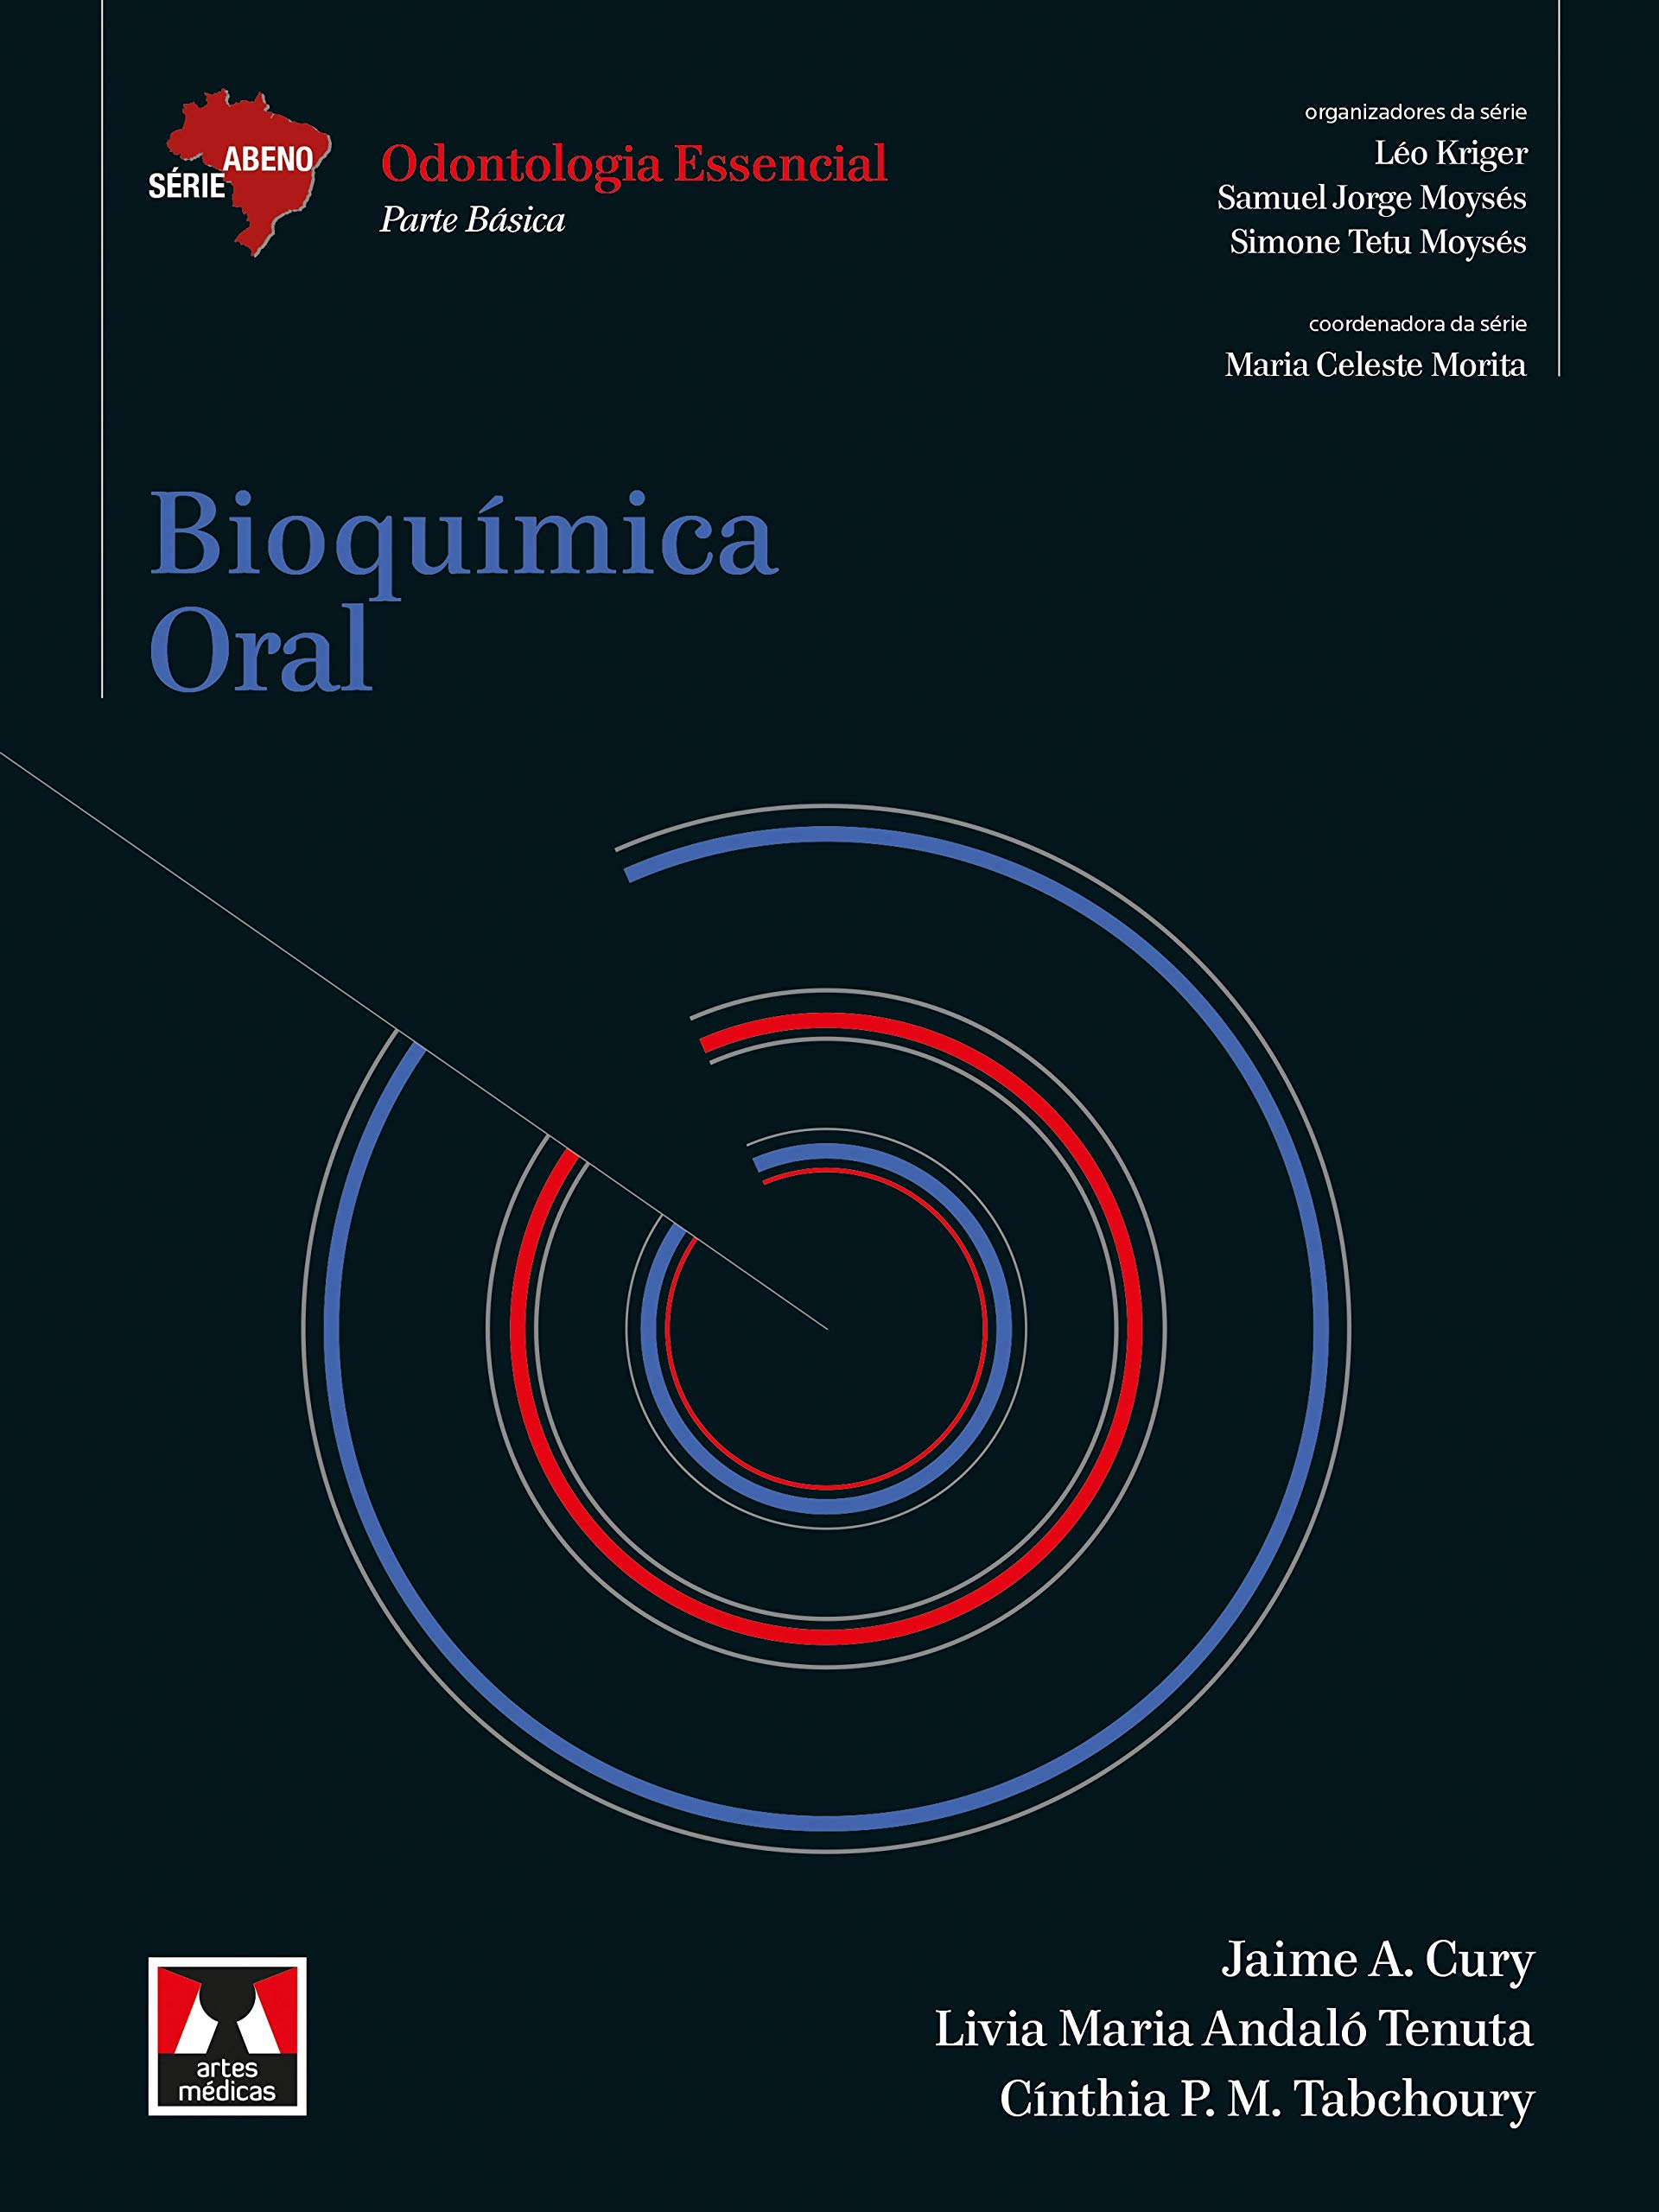 Bioquímica Oral: Jaime A. Cury: 9788536702667: Amazon.com: Books